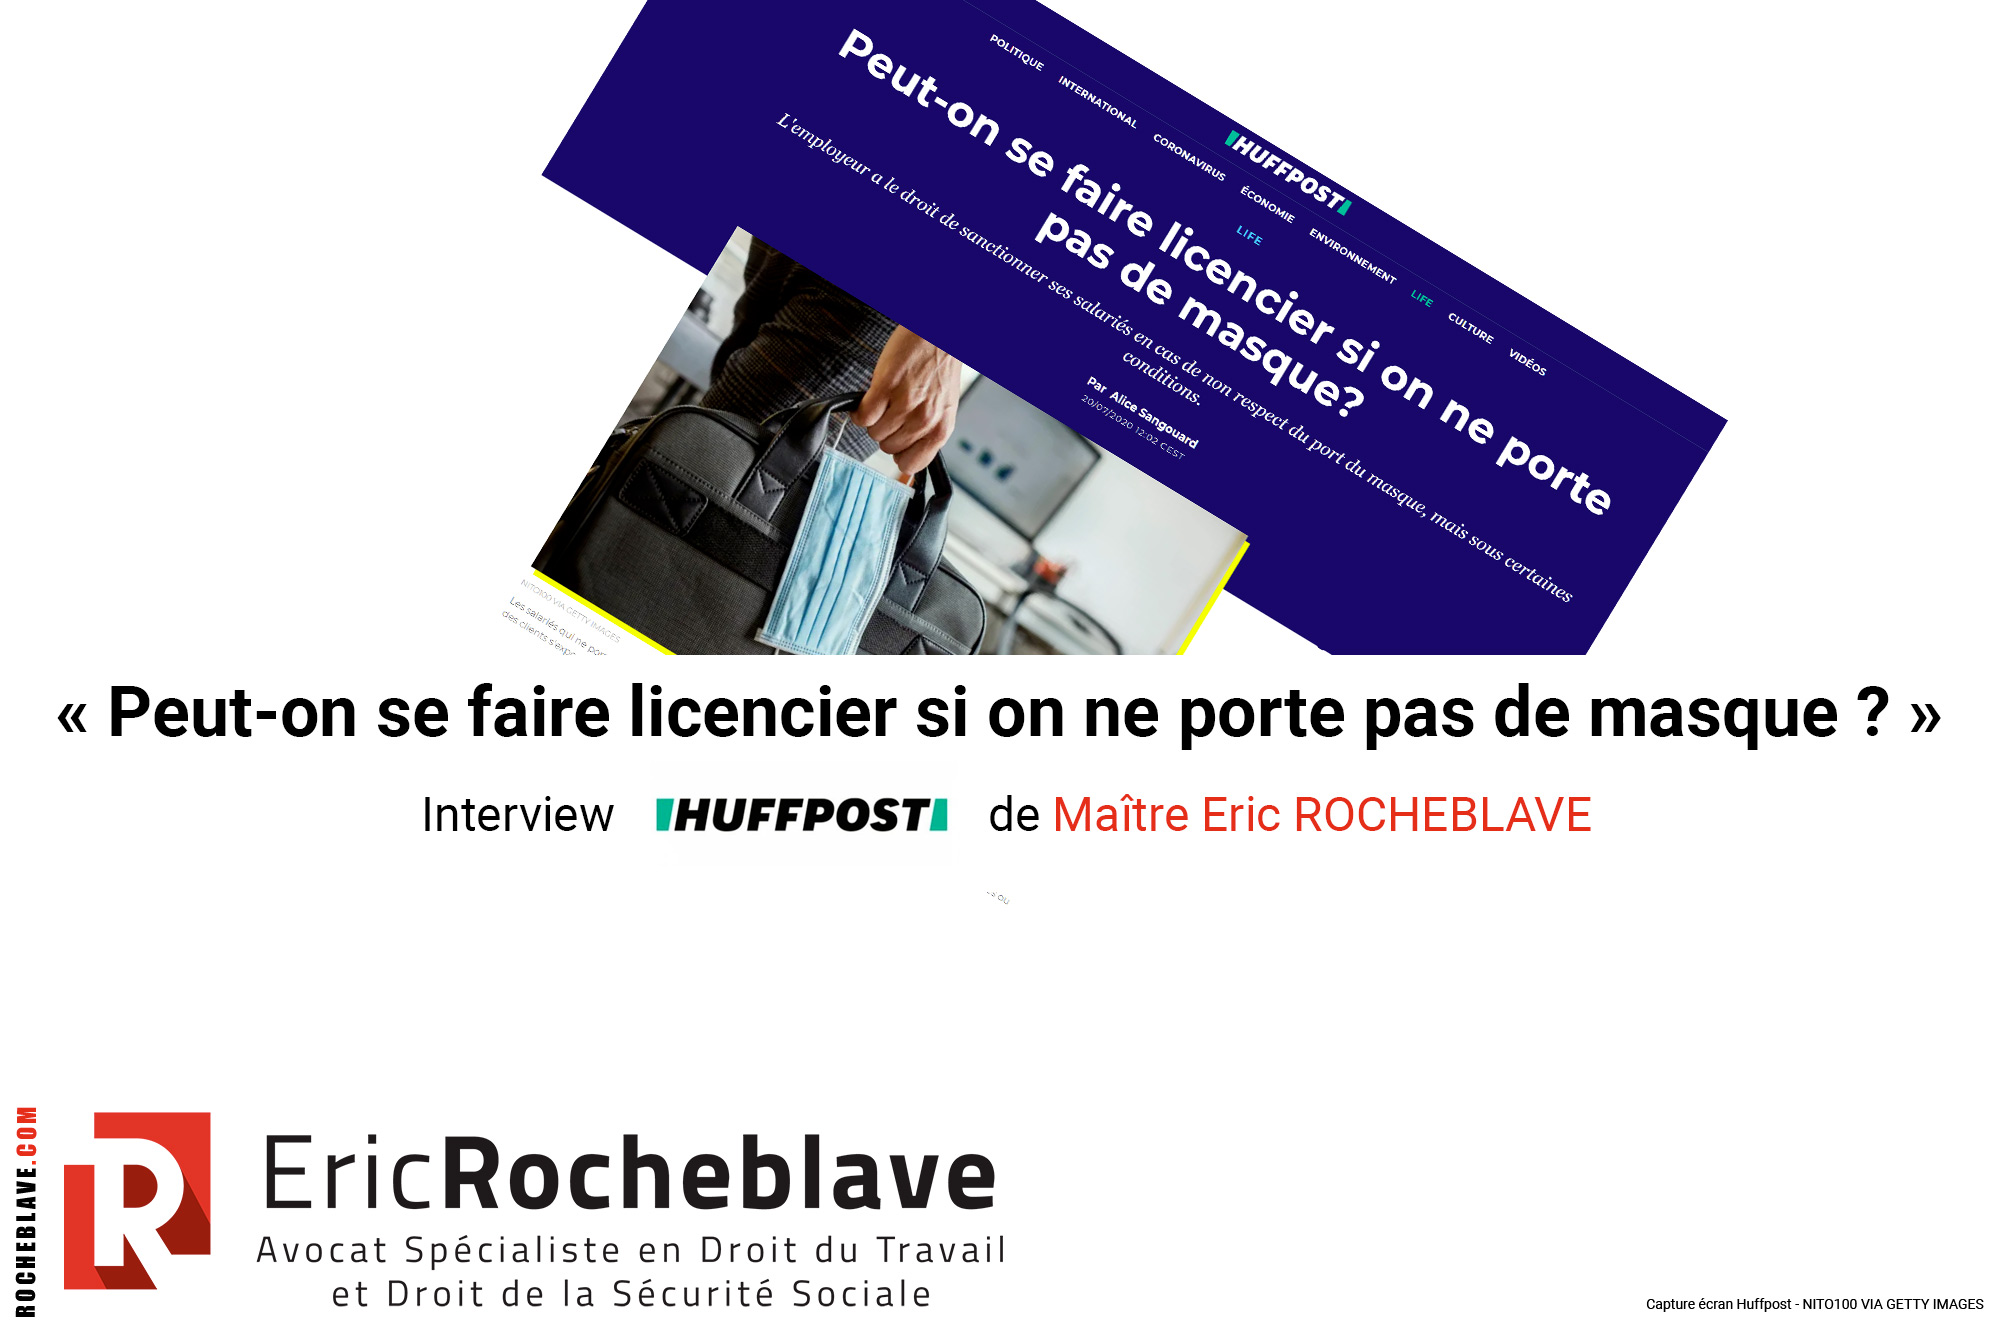 « Peut-on se faire licencier si on ne porte pas de masque ? » Interview HUFFPOST de Maître Eric ROCHEBLAVE